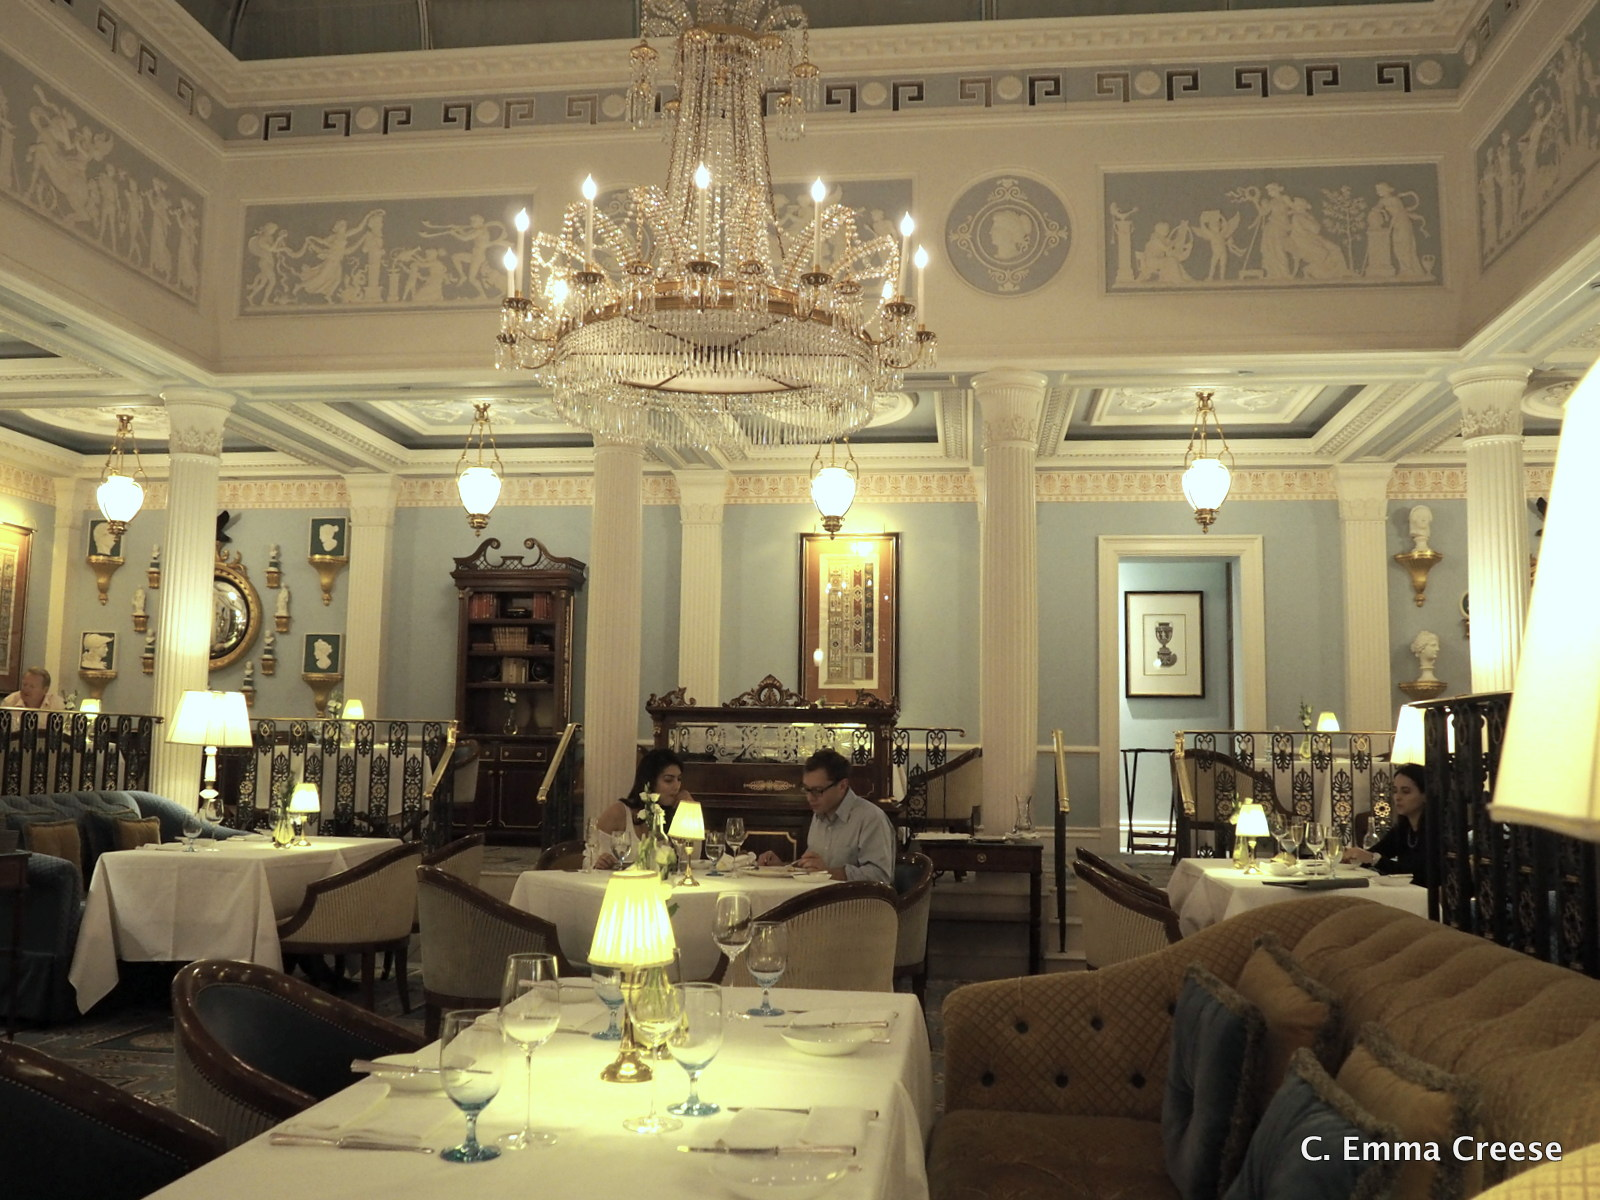 Celeste at the Lanesborough Hotel Luxury Restaurant Review Adventures of a London Kiwi